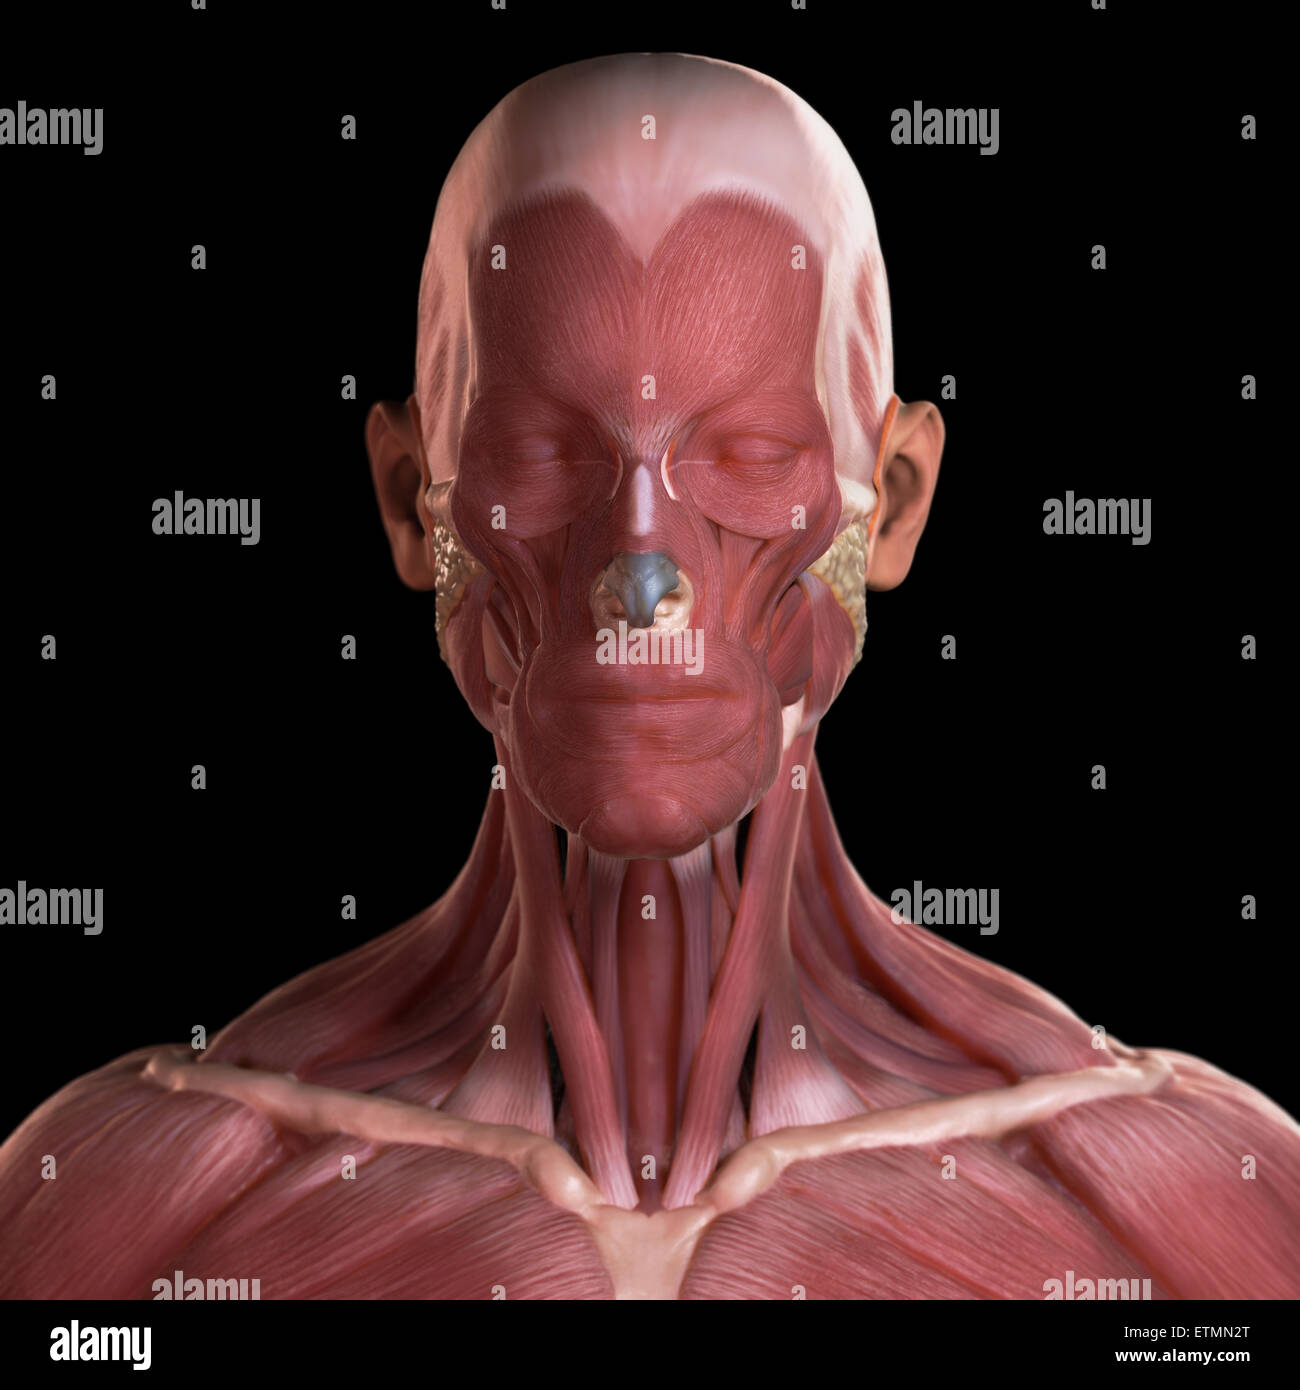 Conceptual image of the muscles of the face. Stock Photo